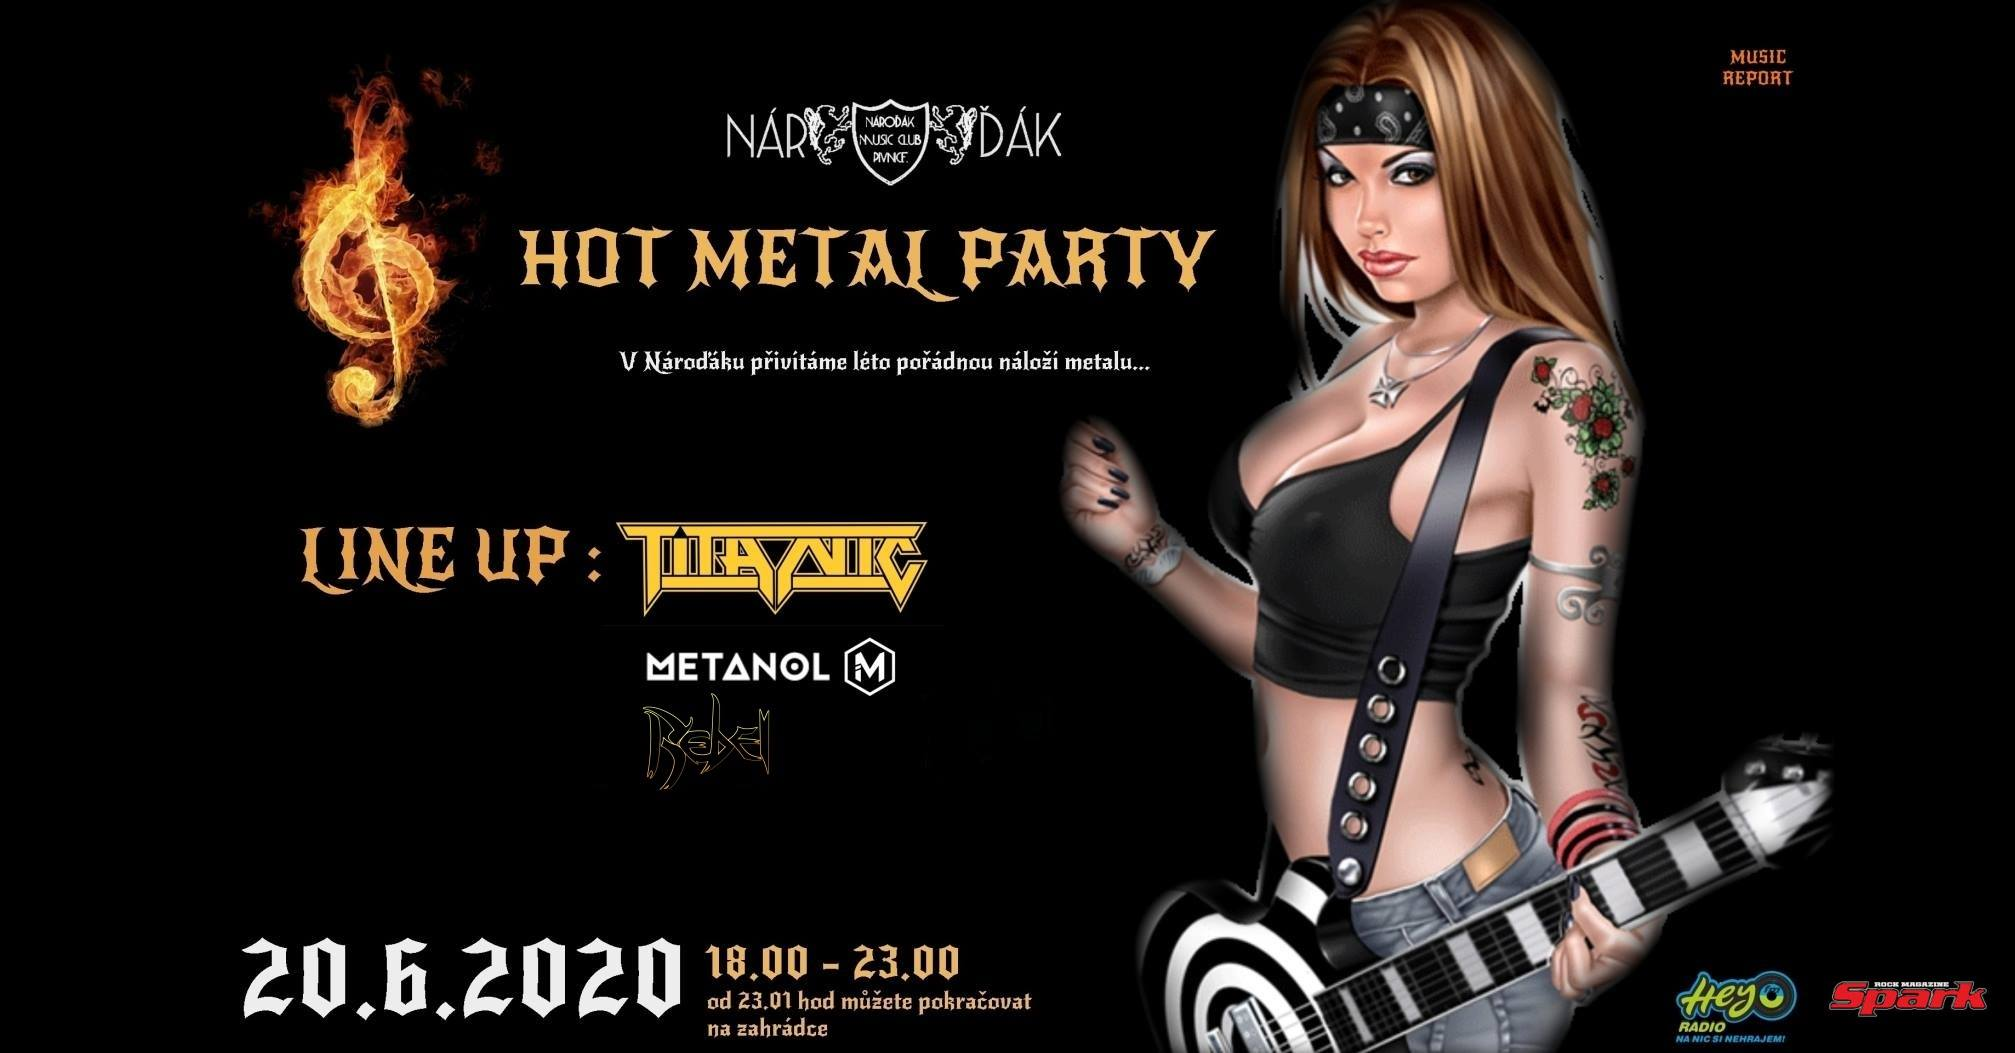 20.6.2020 HOT METAL PARTY